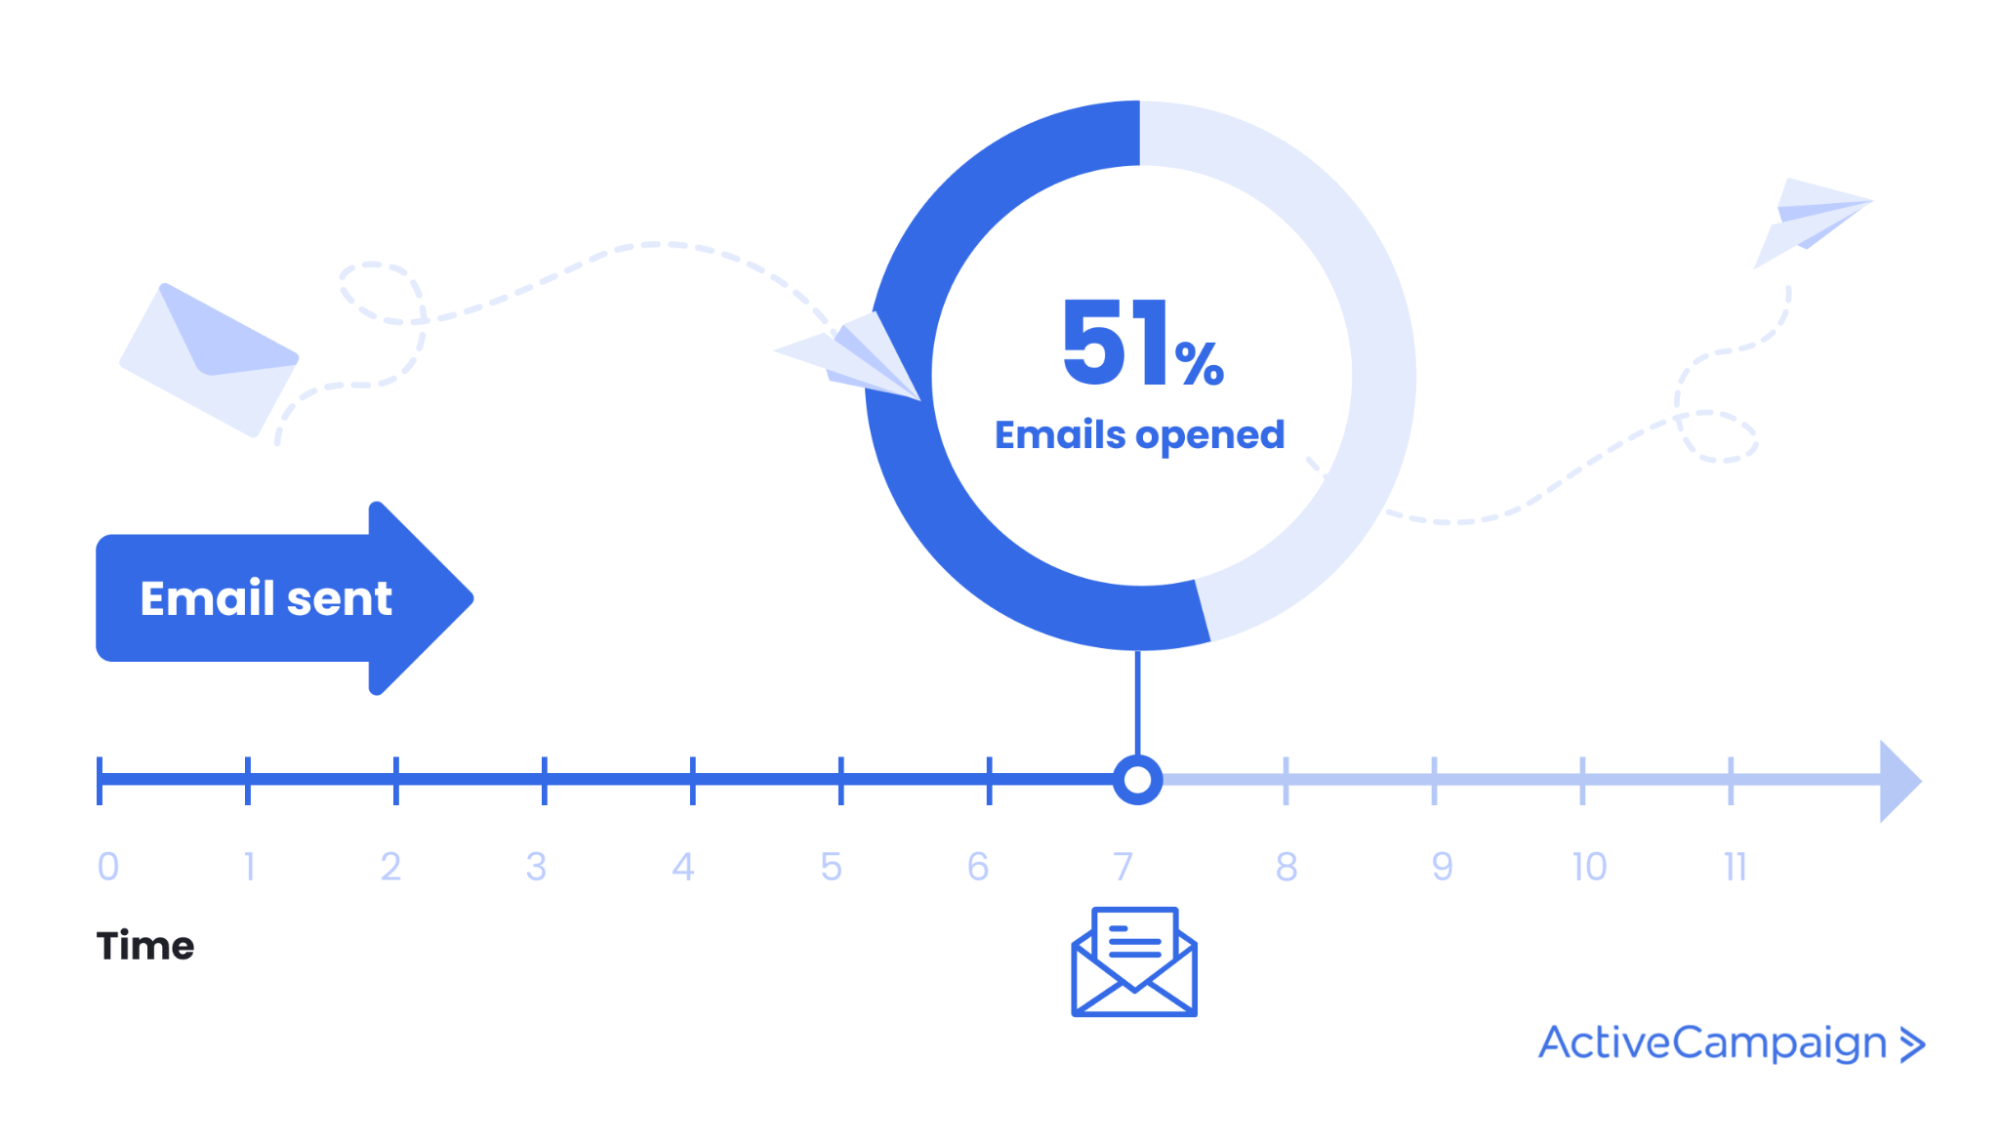 infographic stating 51% of emails are opened within seven hours of receiving them